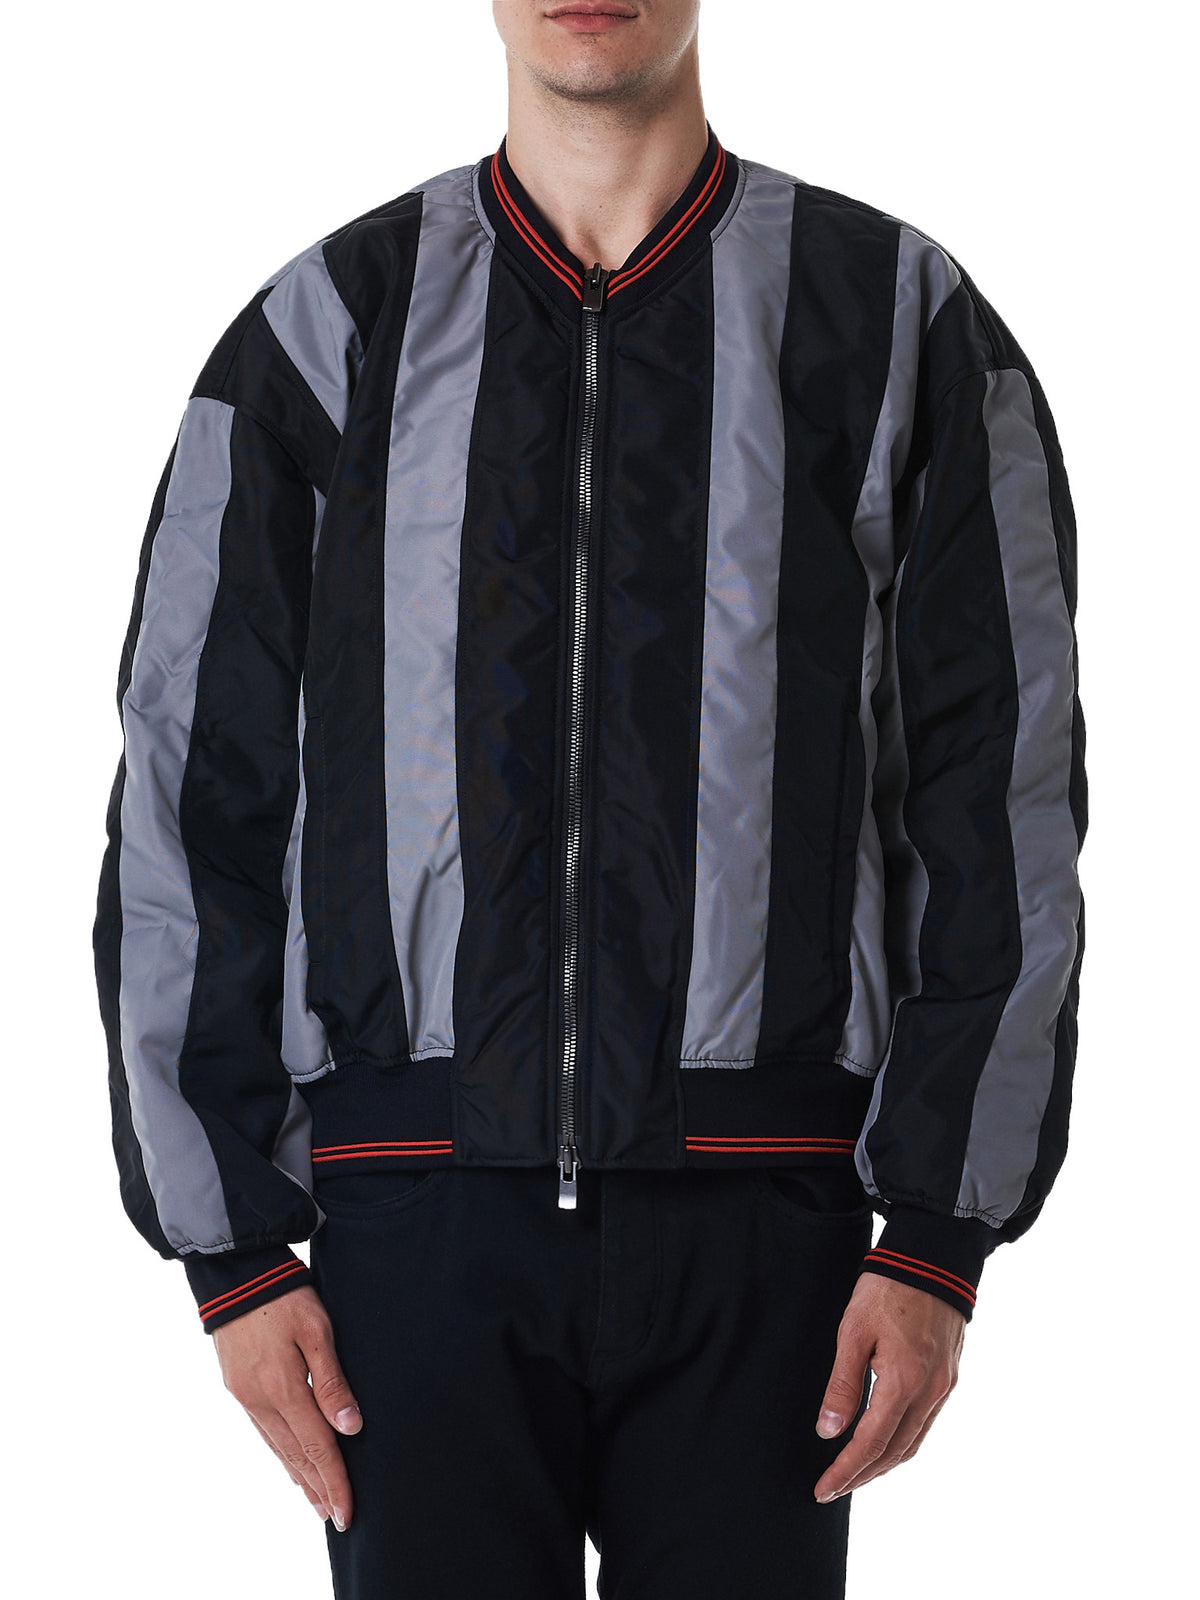 Striped Bomber Jacket (JACK10-S12-S11T9-BLACK-GREY)